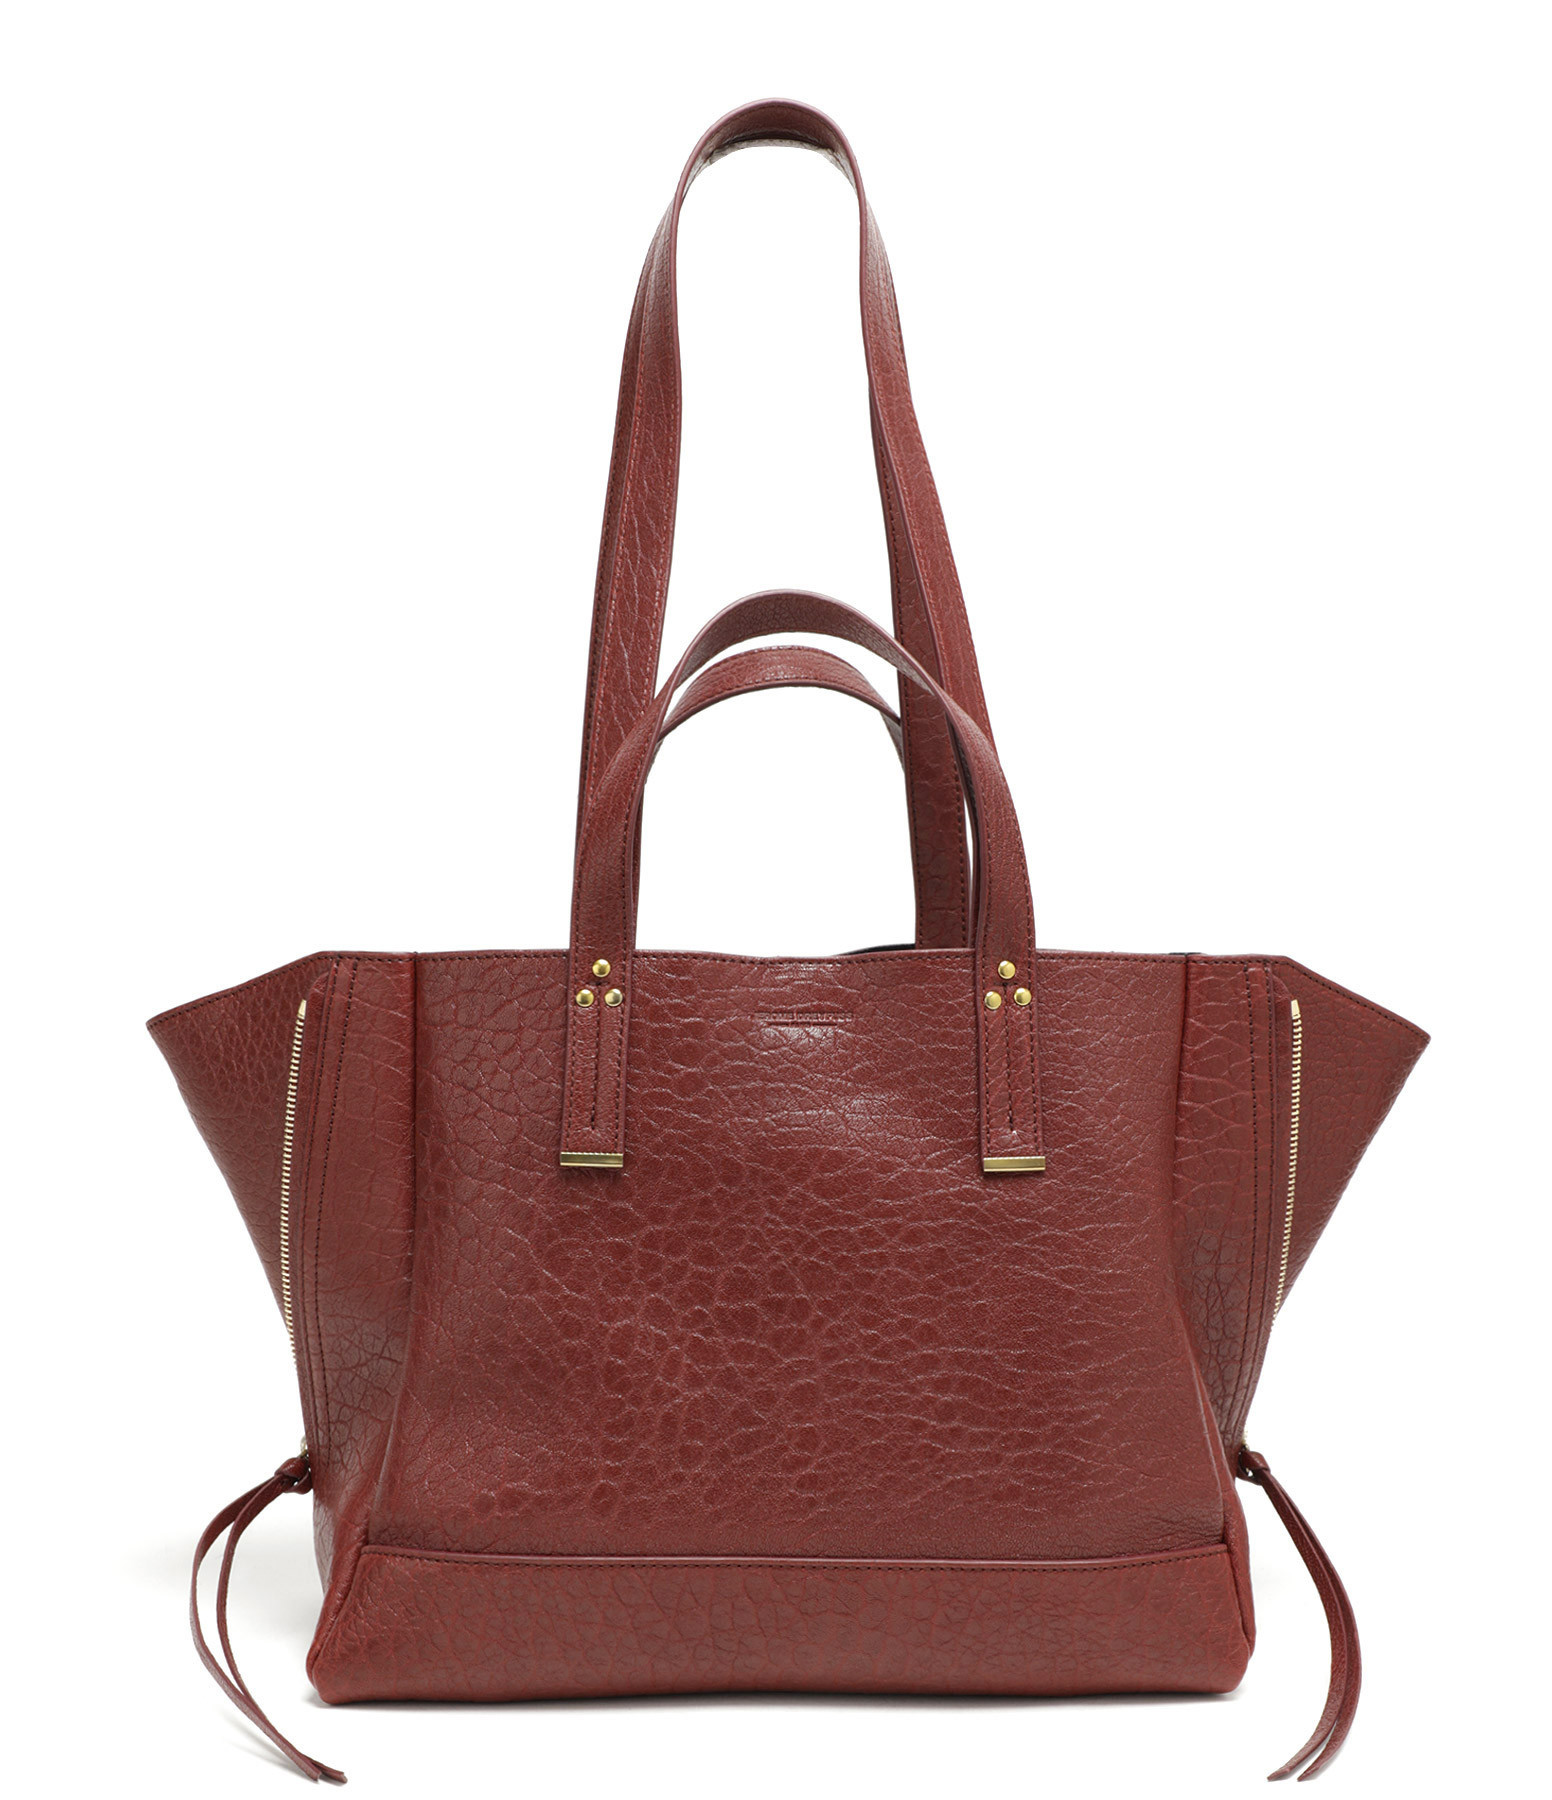 JEROME DREYFUSS - Sac Georges M Agneau Old Red